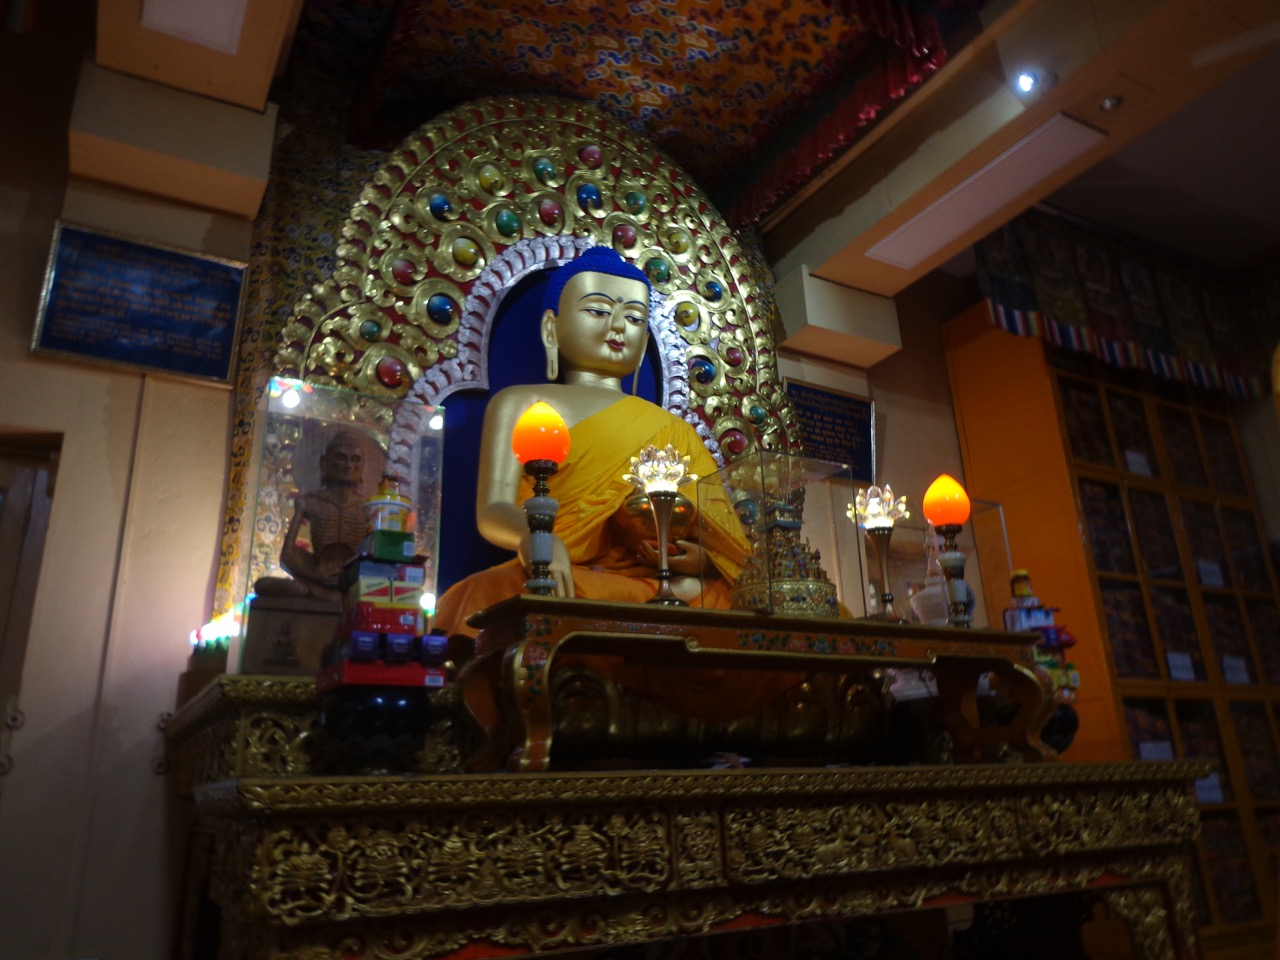 The Buddha statue of the temple. Some ancient scriptures are also preserved in this room.